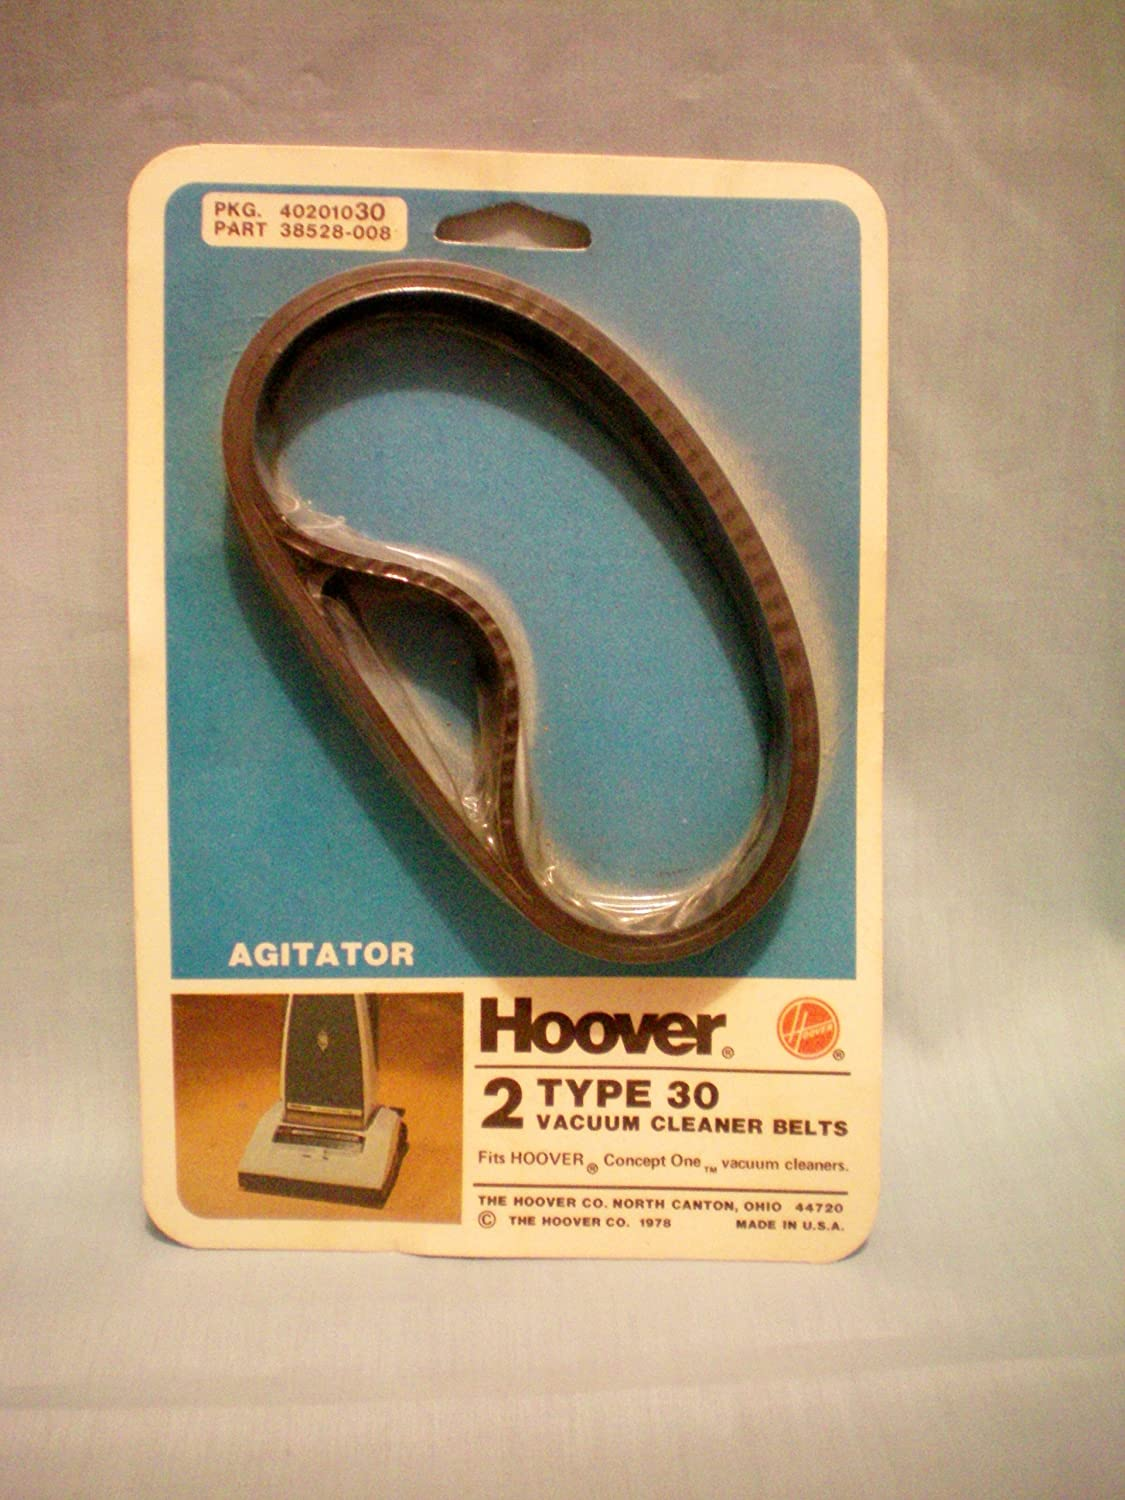 Hoover Agitator Type 30 Vacuum Cleaner Belts -- Pkg of 2 -- Fits Hoover Concept One Vacuum Cleaners